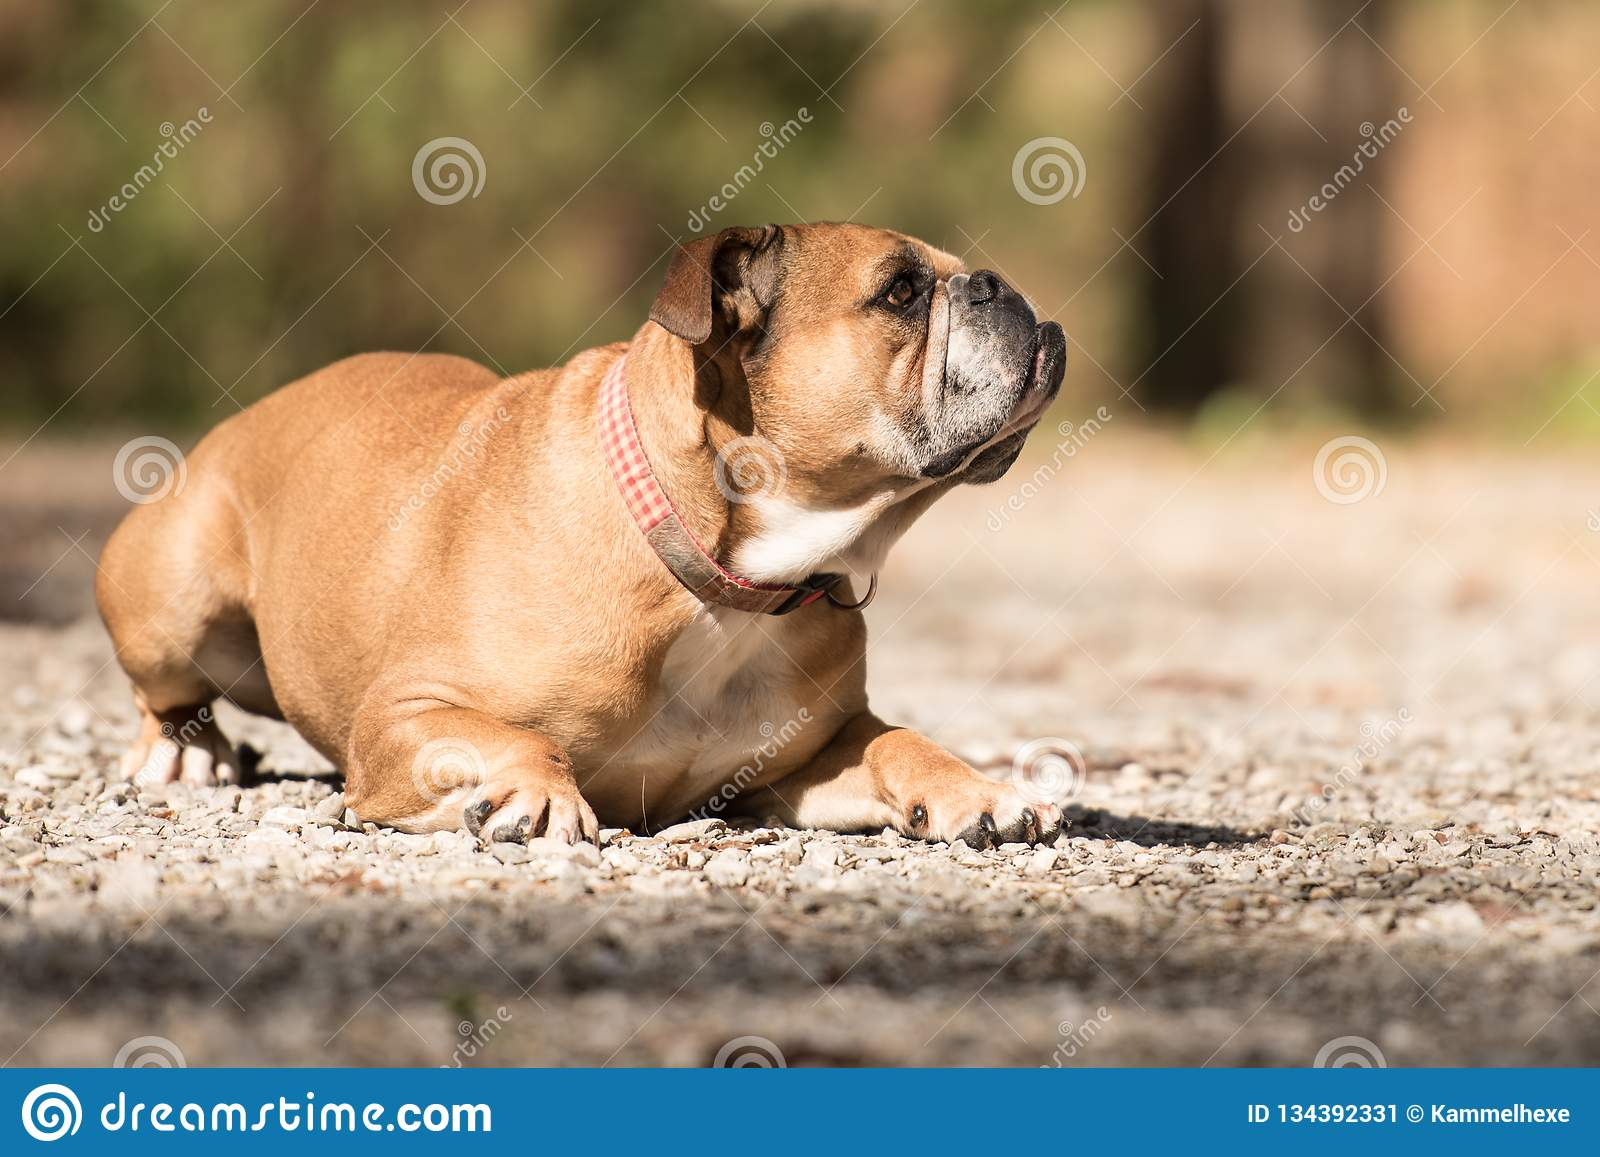 Continental Bulldog Dog Is Lying In The Forest In Front Of Blurred Background Stock Image Image Of Looking Front 134392331